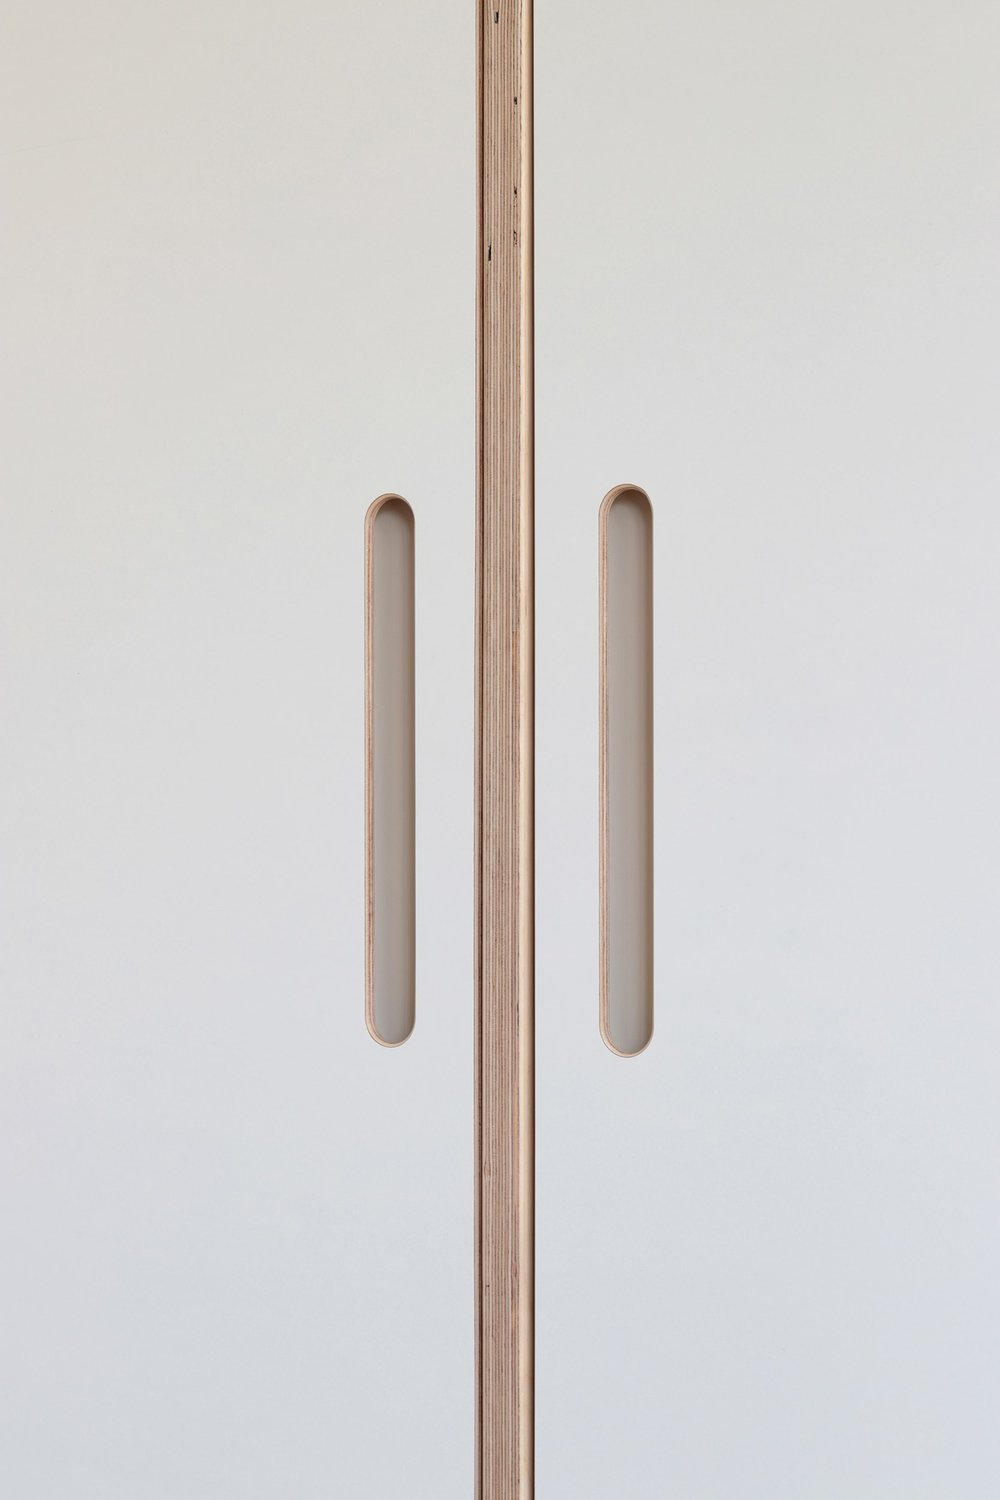 Handle detail from Ilaria's bespoke plywood wardrobe designed by Lozi in her home in East London